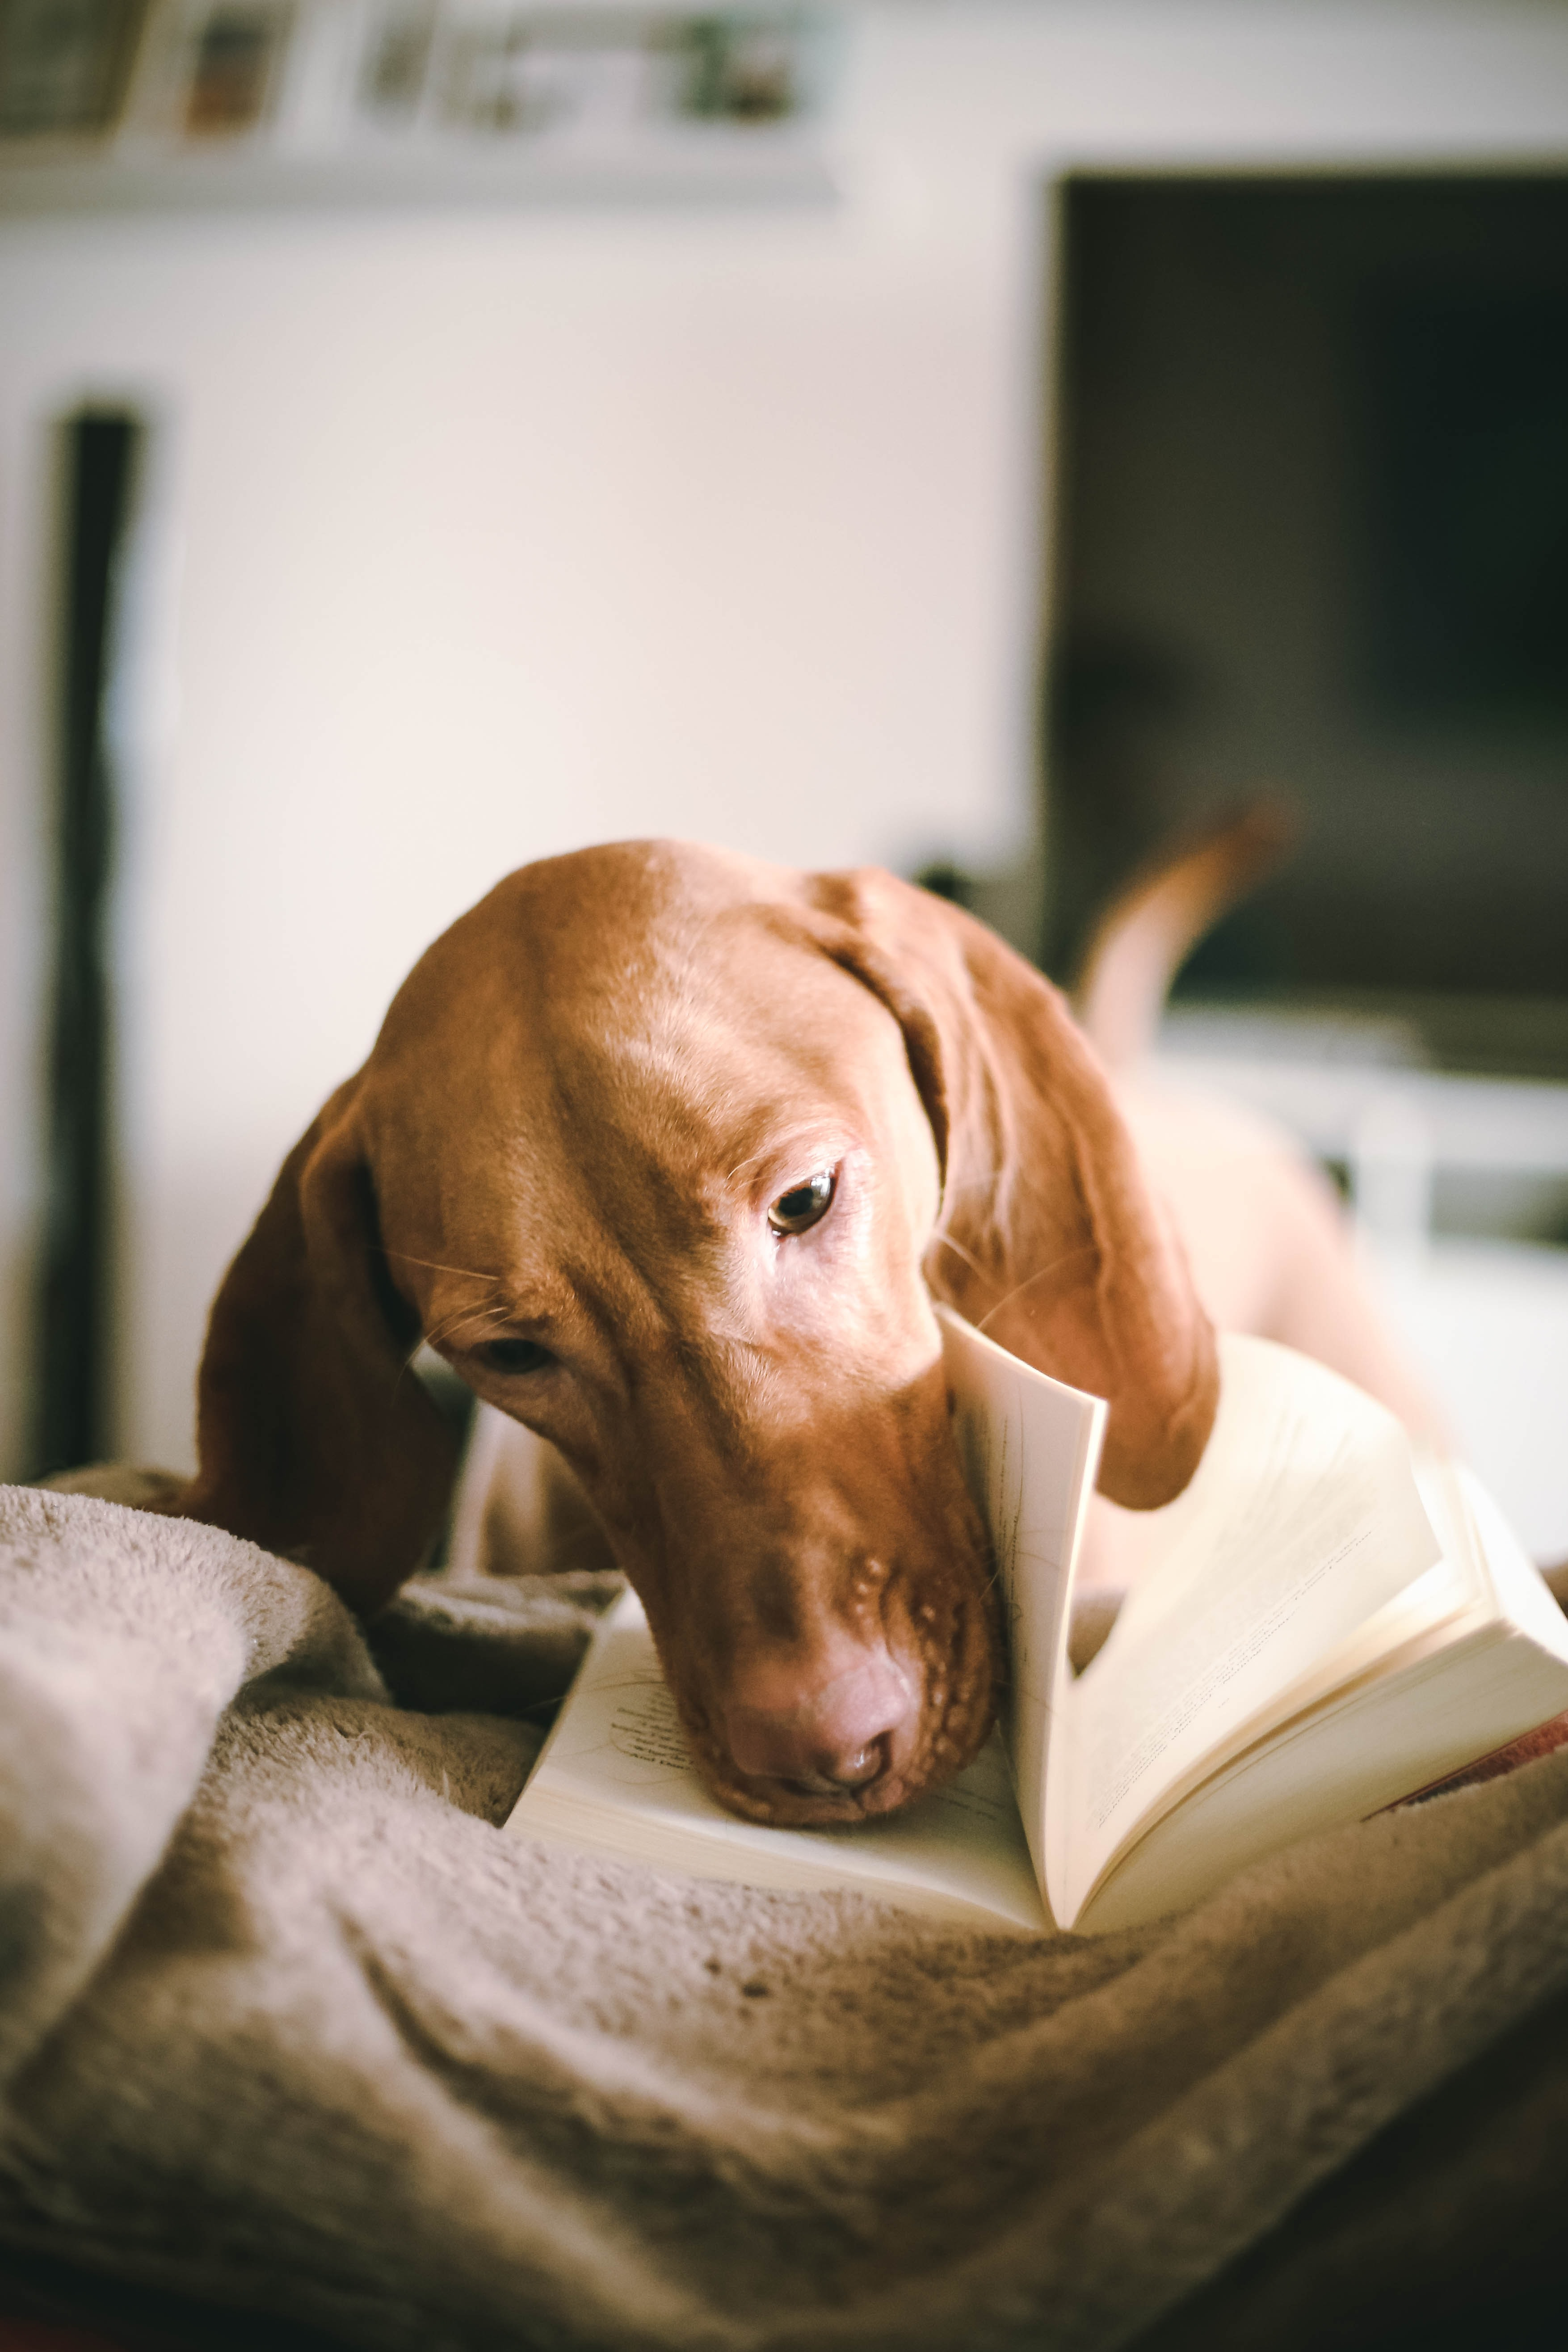 dog flipping book page